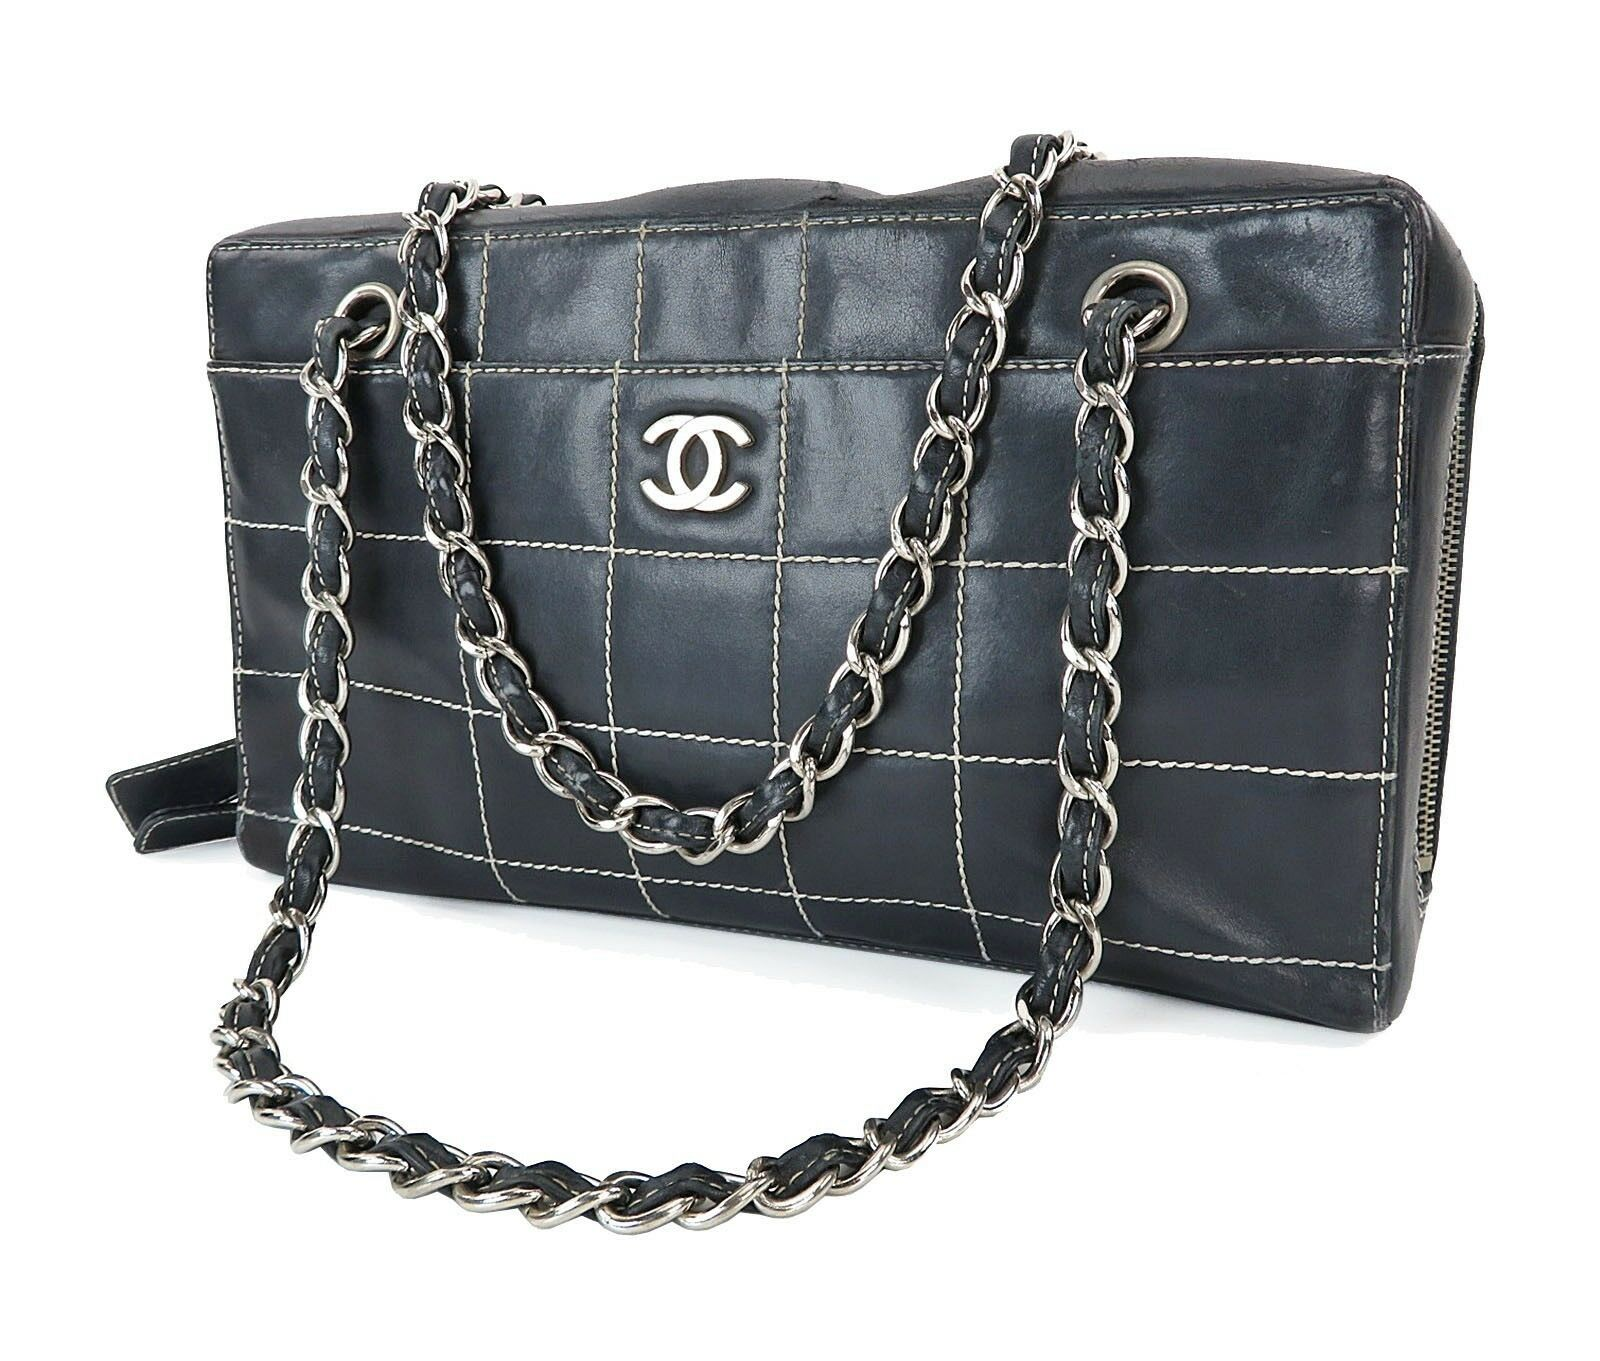 Authentic CHANEL Blue Chocolate Bar Leather Chain Shoulder Bag Purse #26366